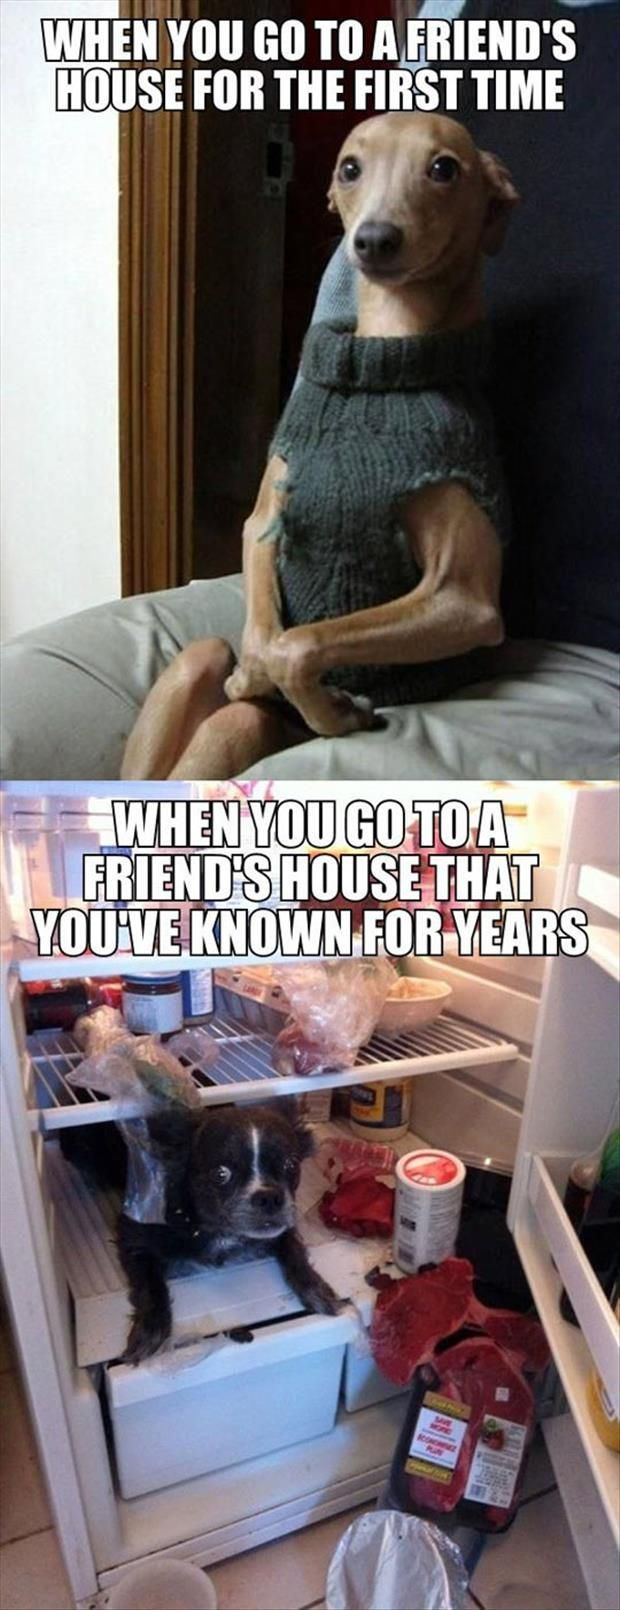 Friend's house feelings #funny #dogs #memes                                                                                                                                                                                 More